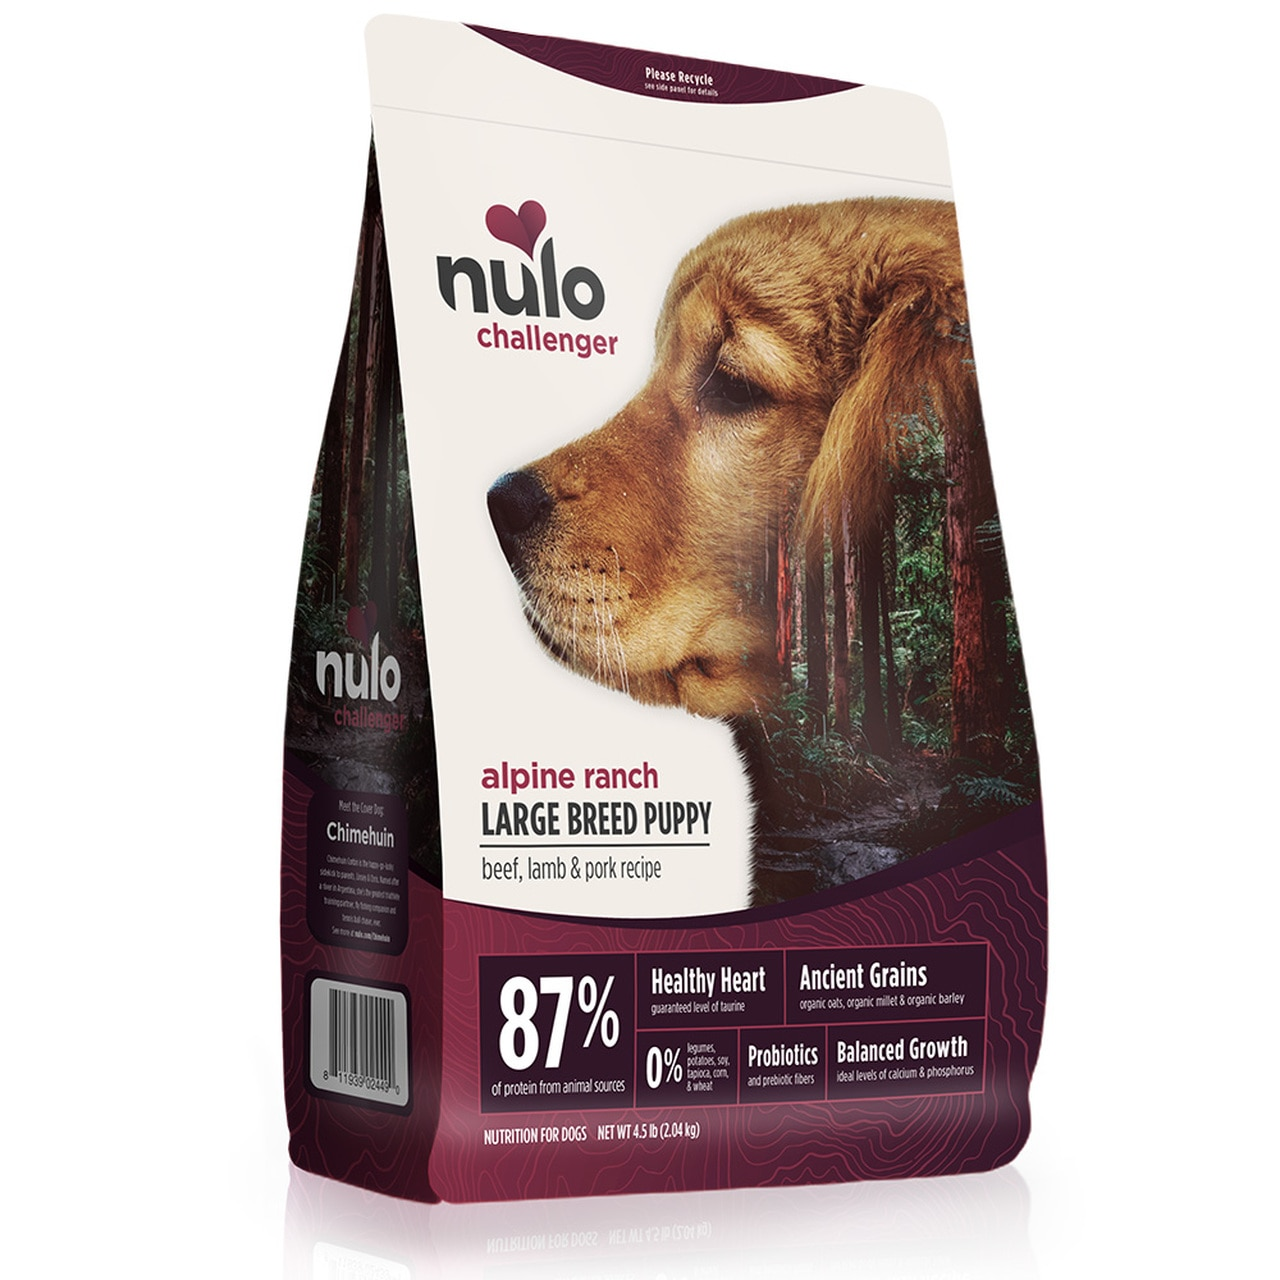 Nulo Challenger Alpine Ranch Beef, Lamb & Pork Large Breed Puppy Food, 24-lb